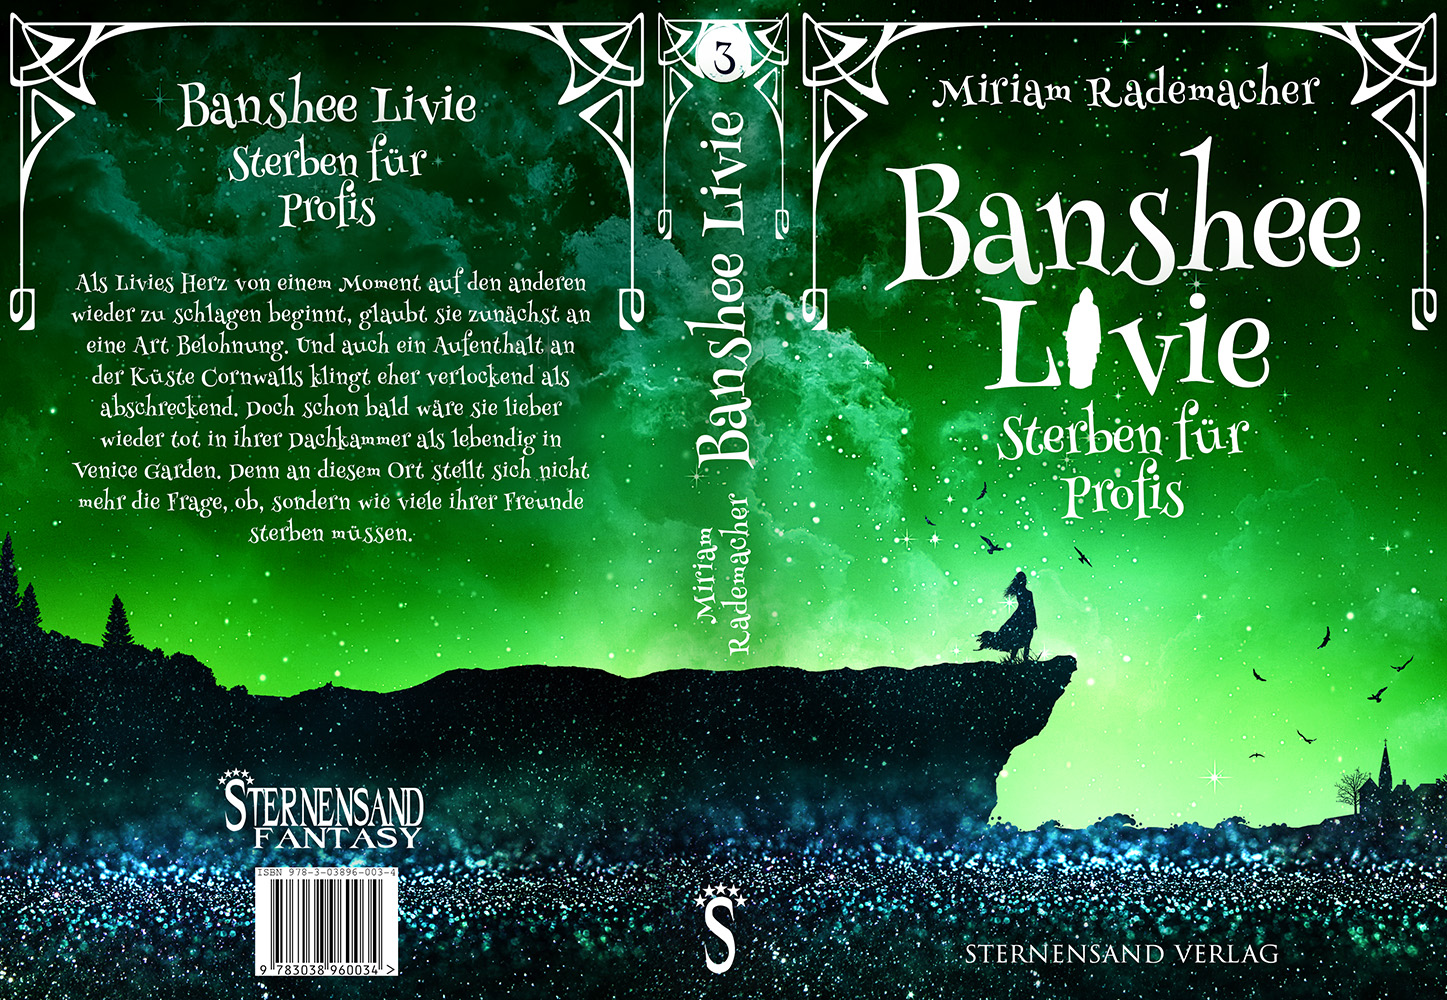 BansheeLivie3 full